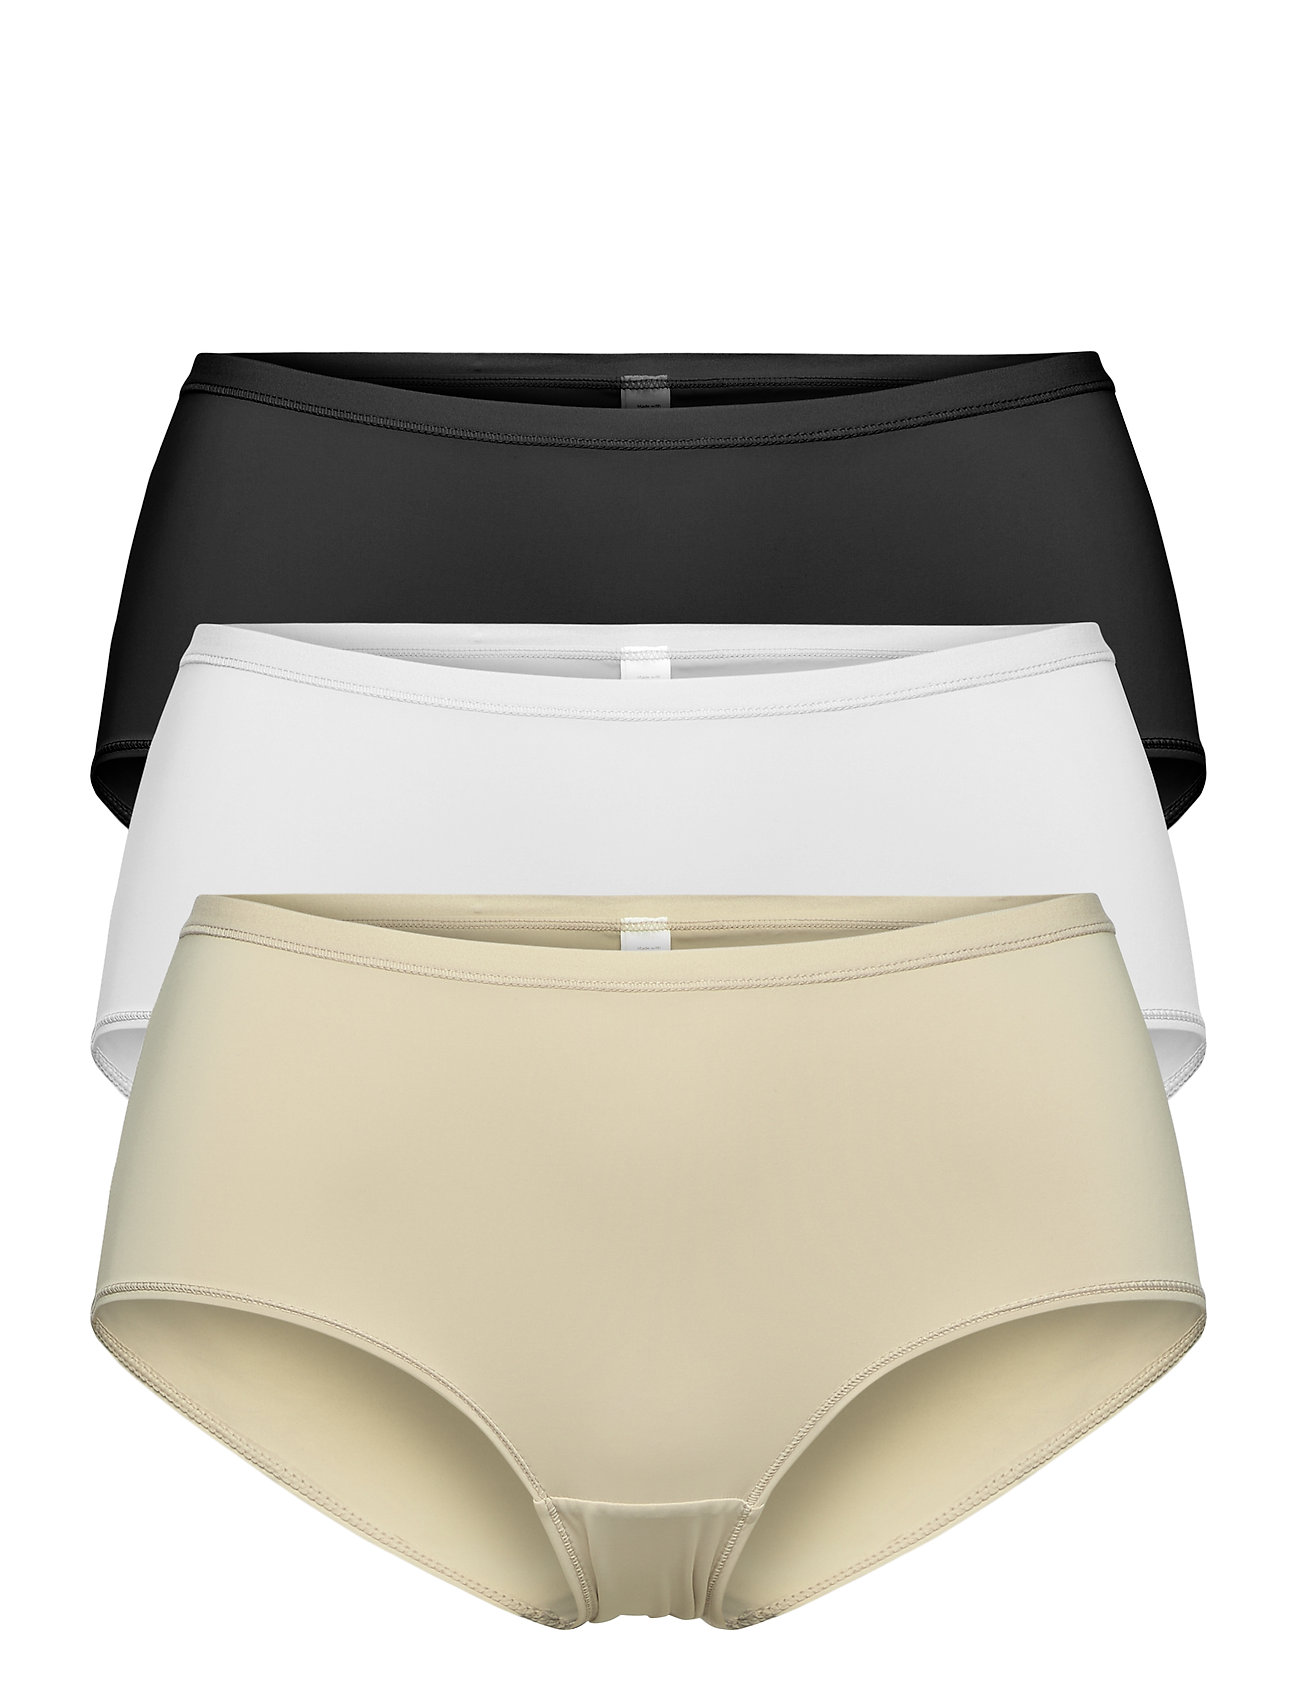 Brief 3-Pack Polly Classic Re Trusser, Tanga Briefs Multi/mønstret Lindex